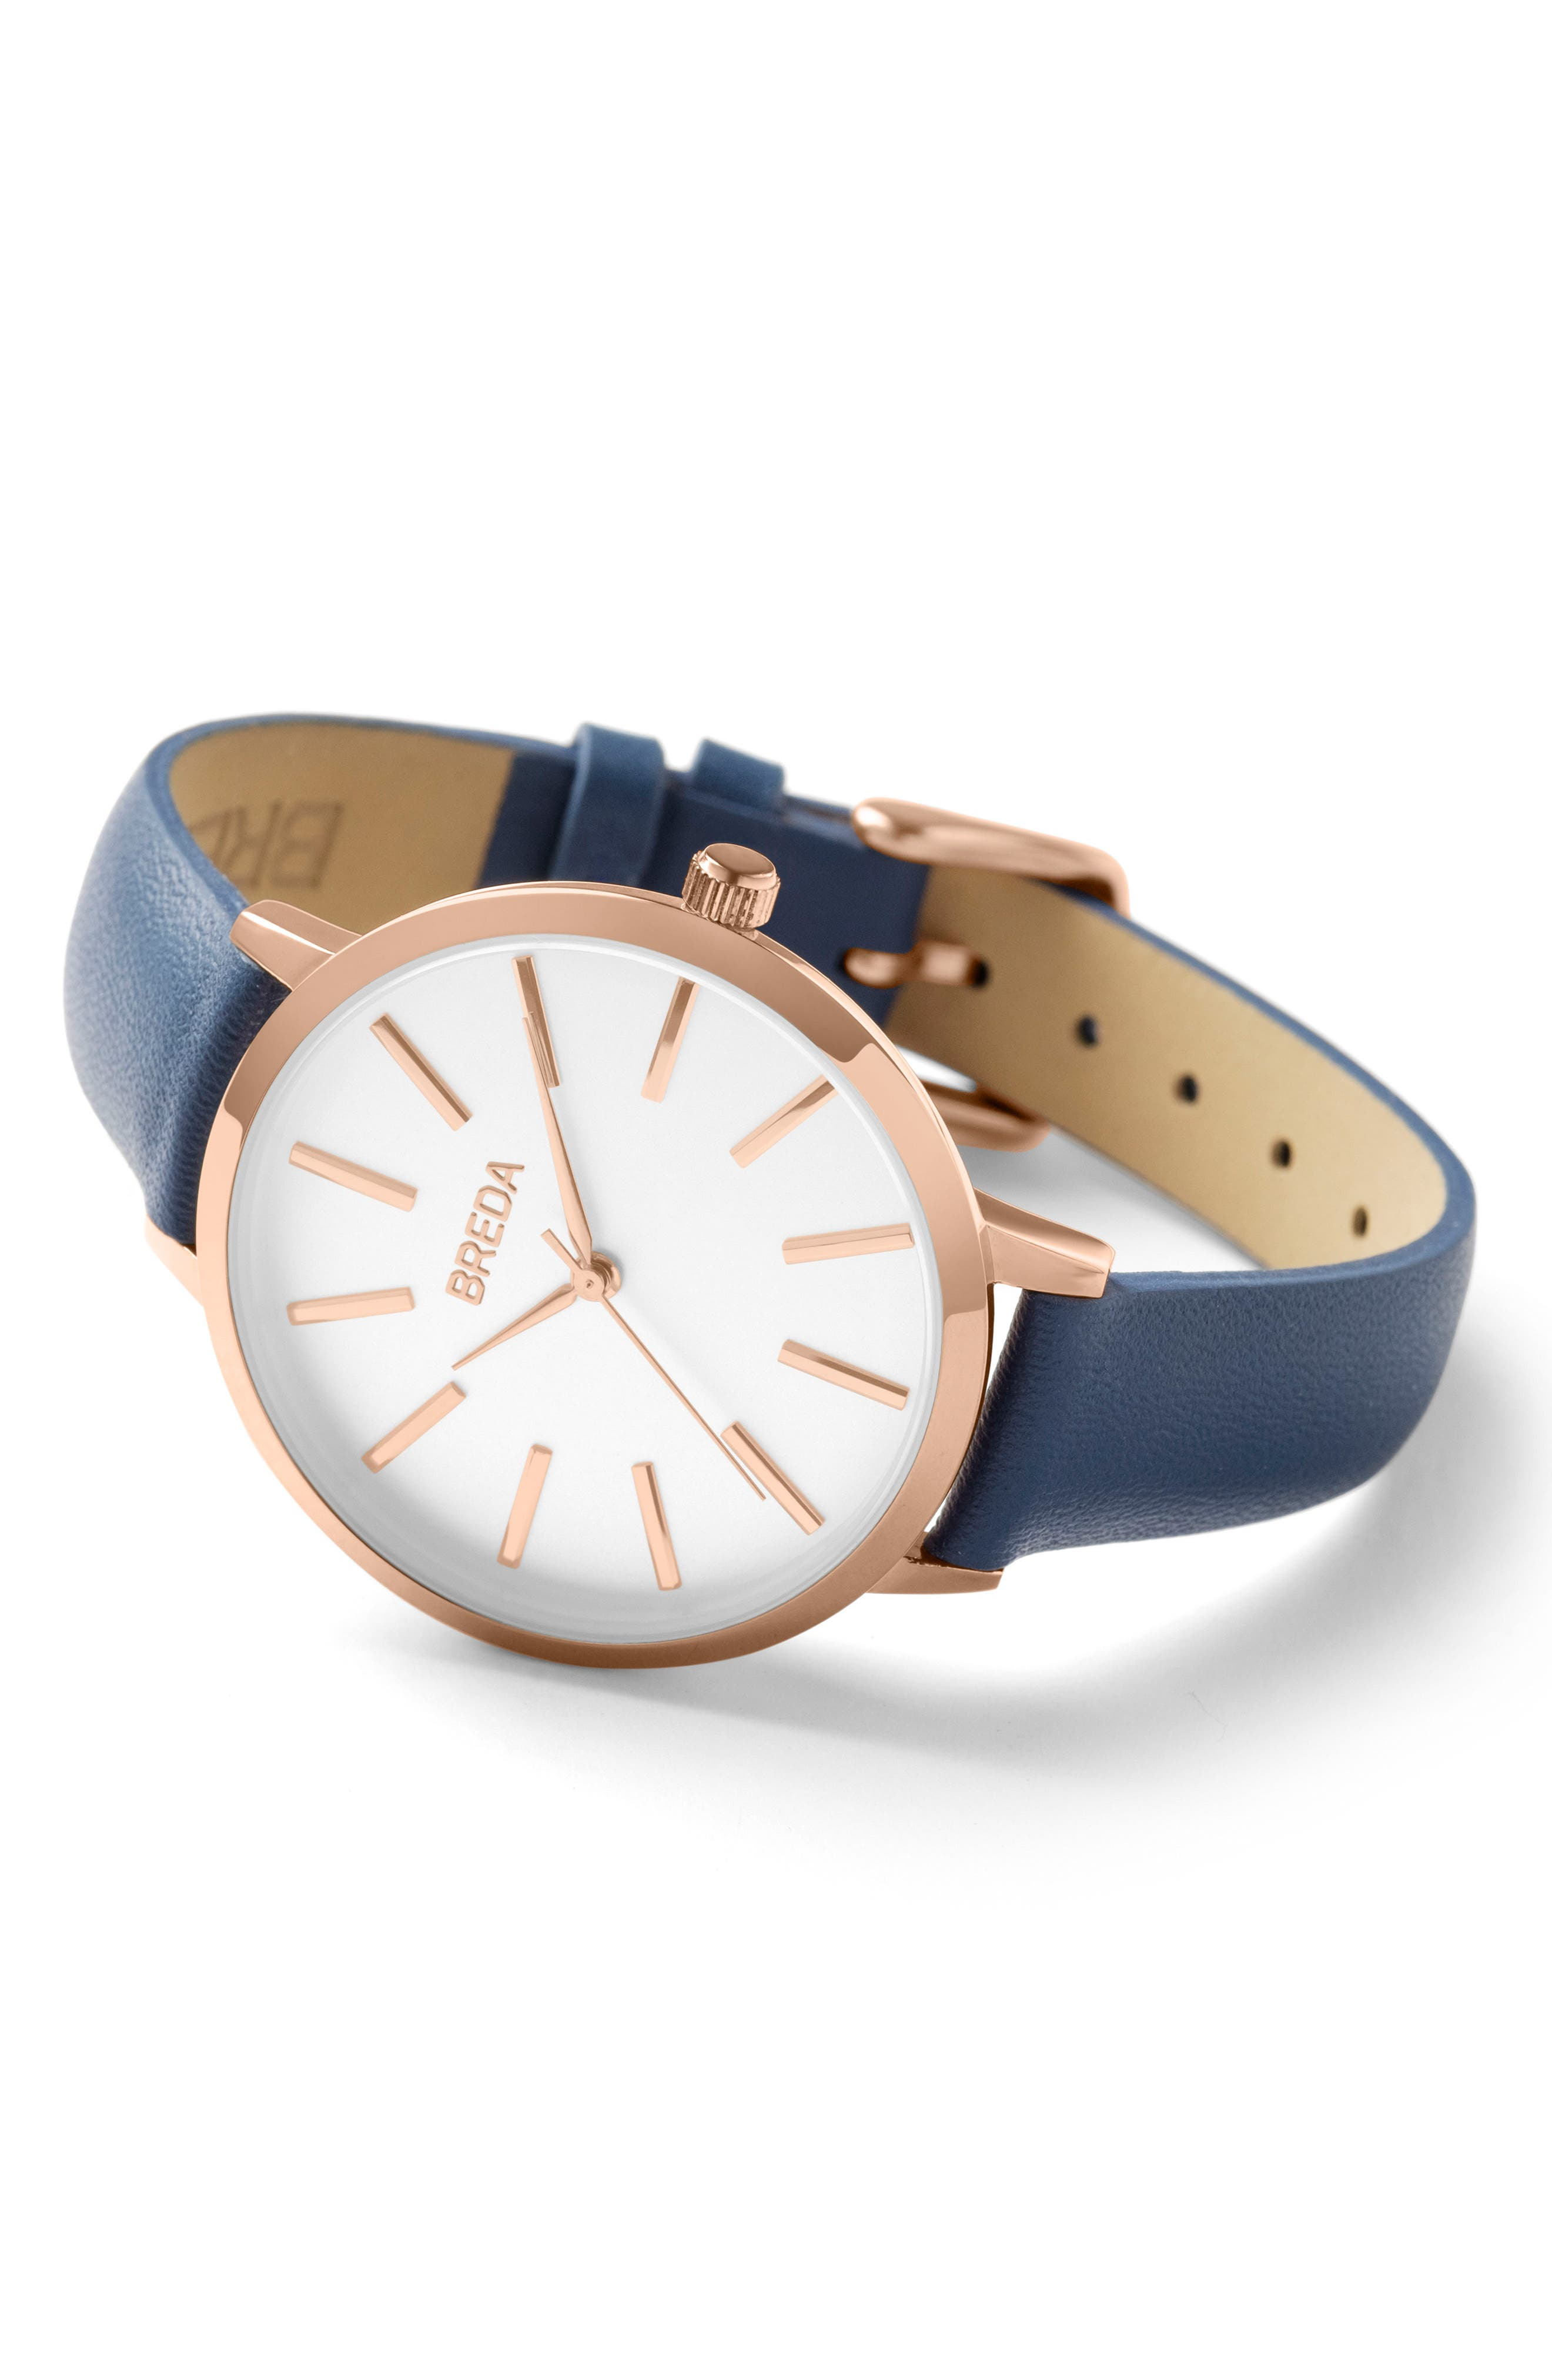 Joule Round Leather Strap Watch, 37mm,                             Alternate thumbnail 2, color,                             Navy/ White/ Rose Gold